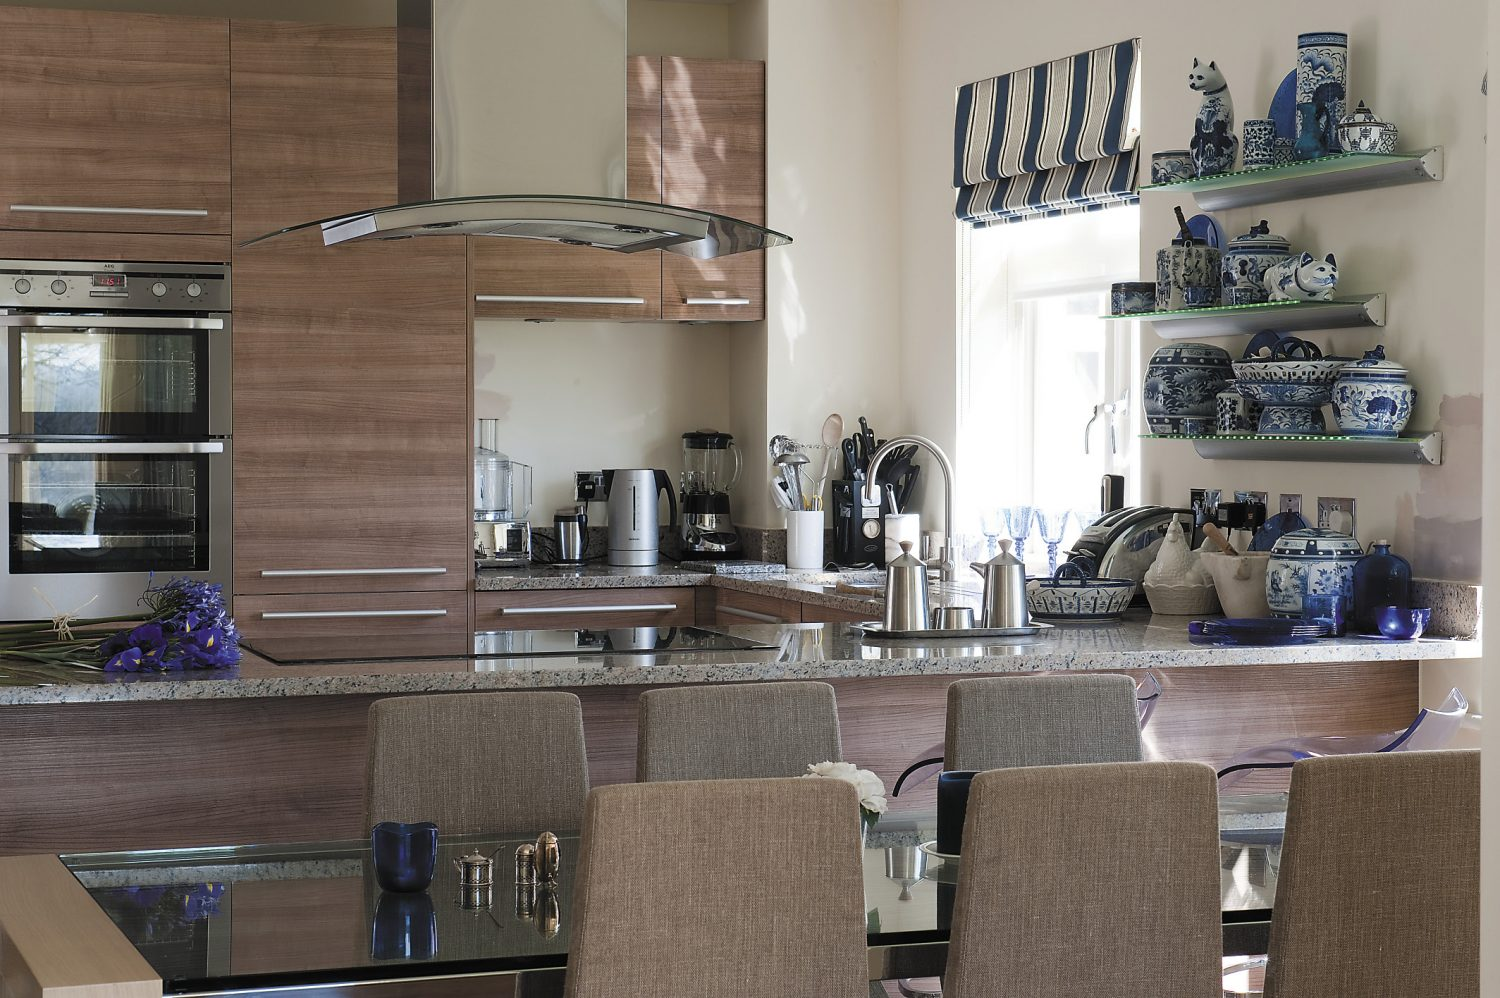 Jauntily striped cobalt blue and grey Roman blinds reinforce the colour scheme and complement the grey-beige tones of the sleek Italian kitchen units